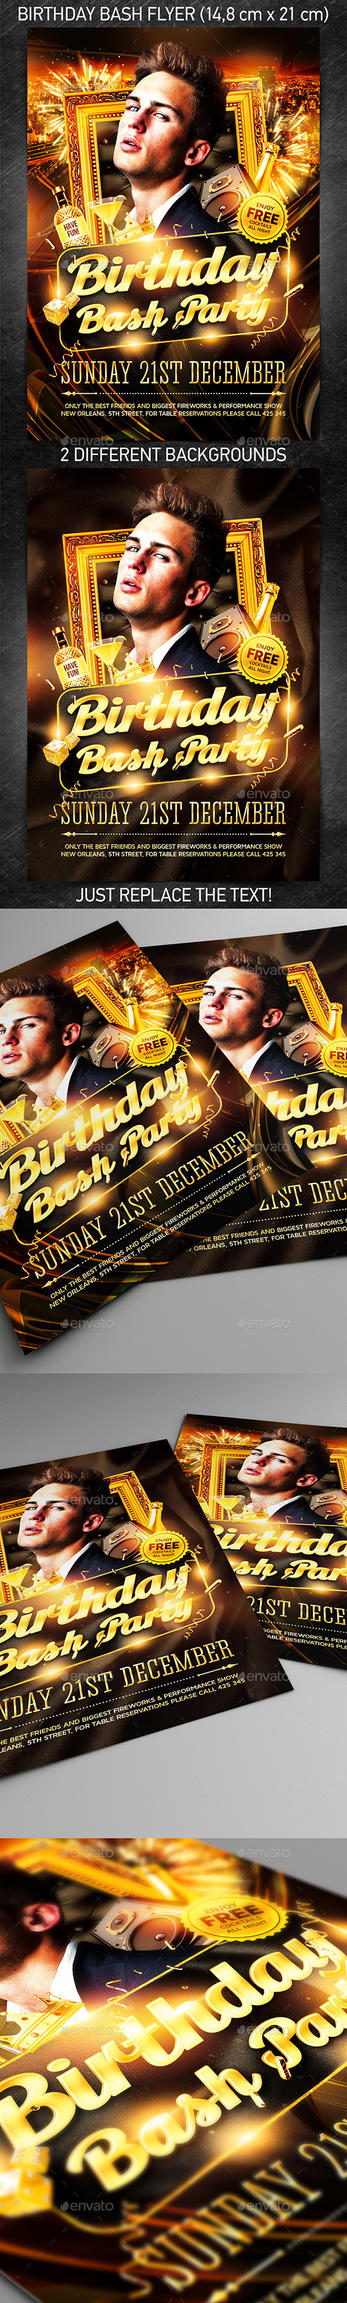 Birthday Bash Party Flyer, PSD Template by 4ustudio